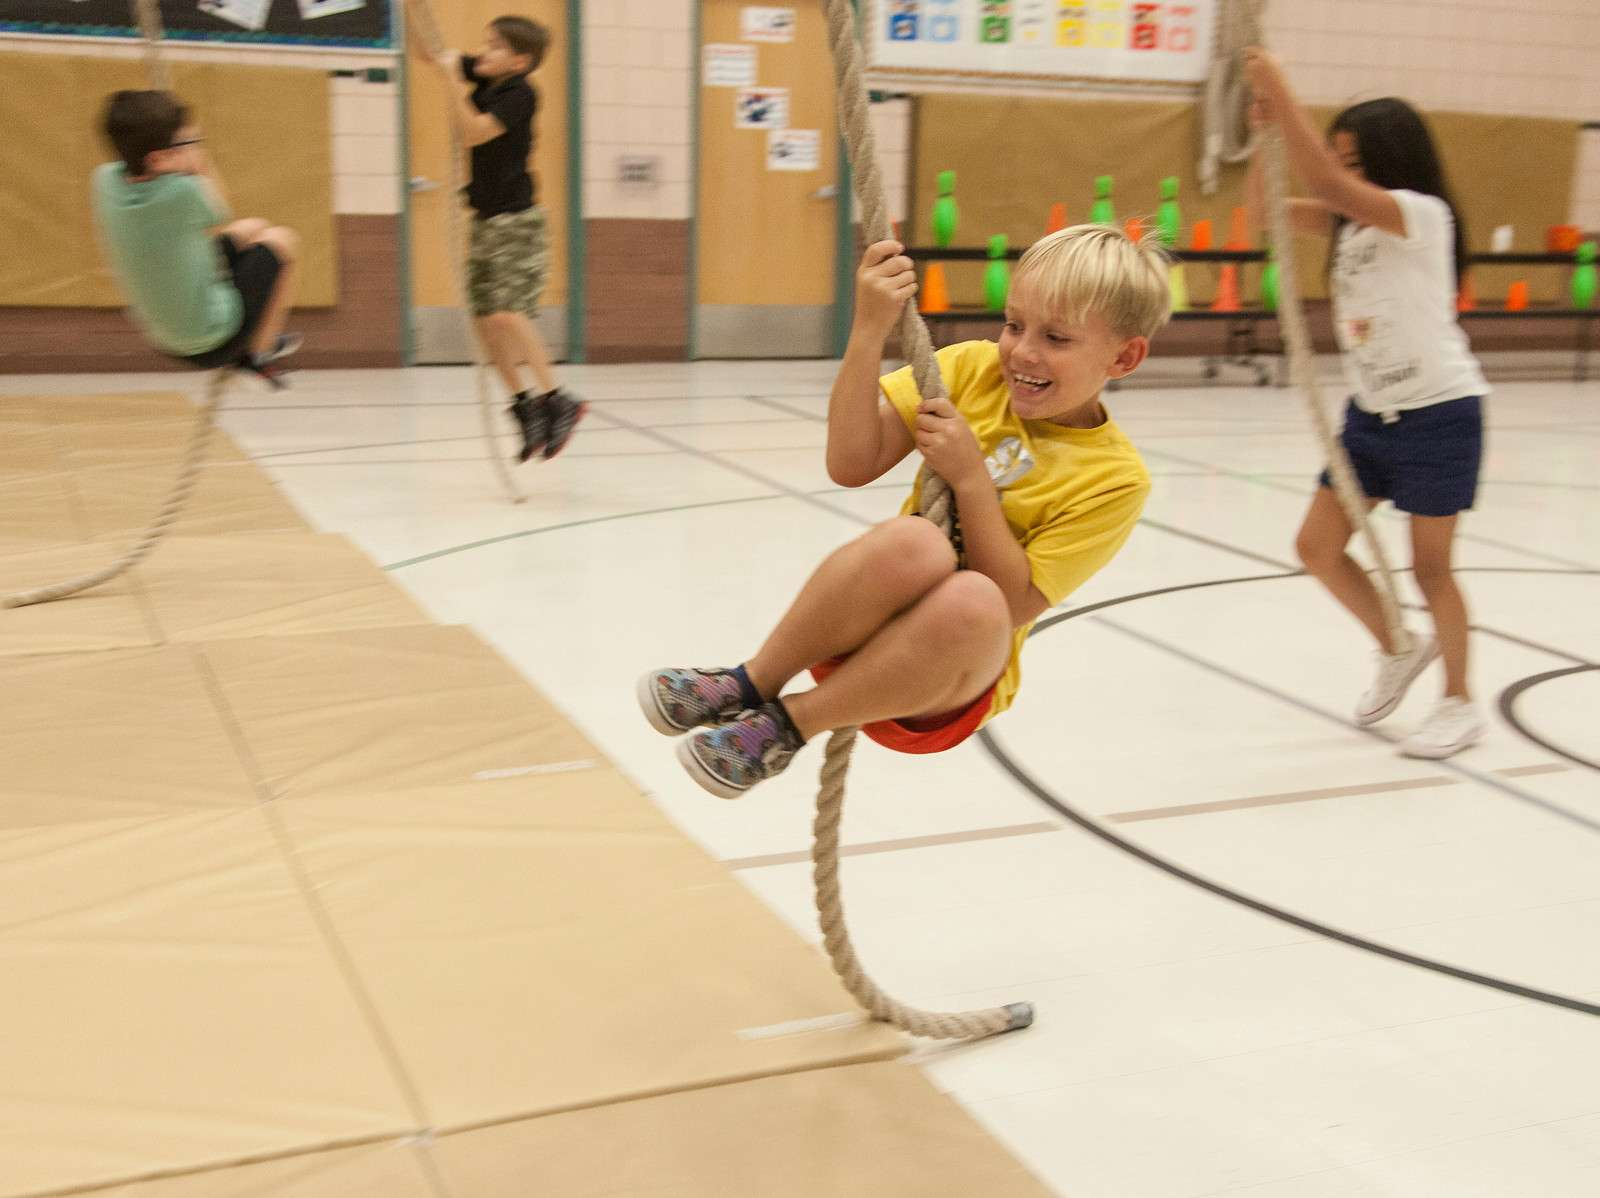 Students At Bush Elementary School Participate In Physical Education Class. Photo Courtesy Of Tim Hacker/Mesa Public Schools